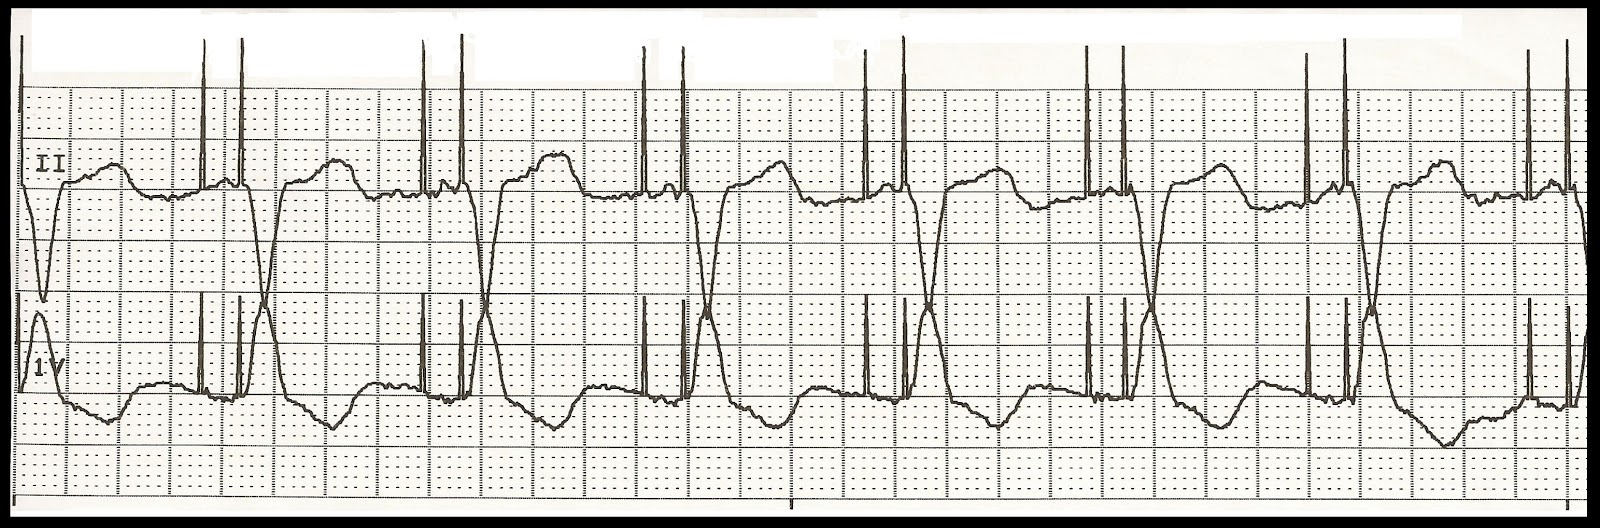 svt-ekg-strip